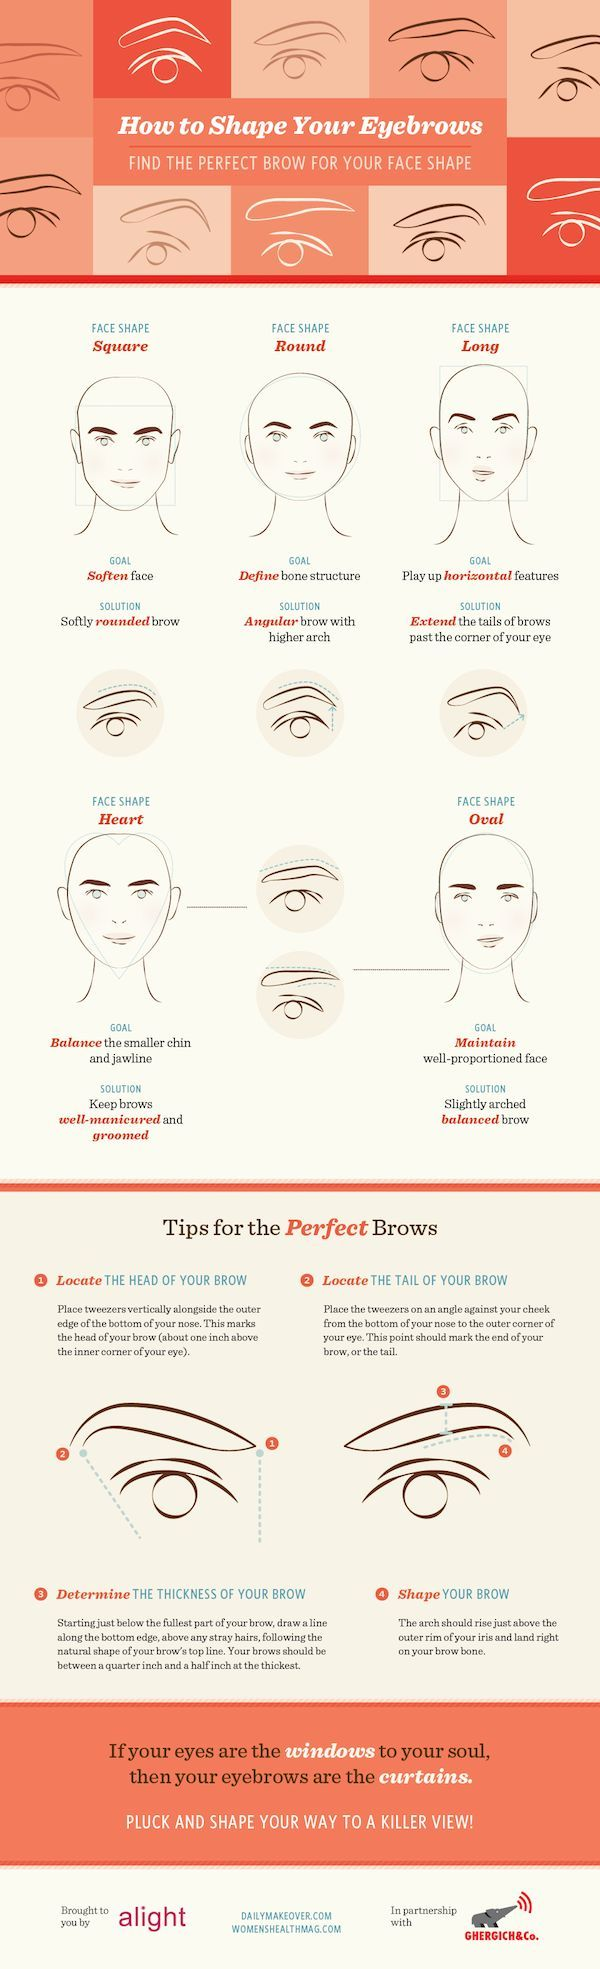 How to shape your eyebrows pinned with Pinvolve - pinvolve.co